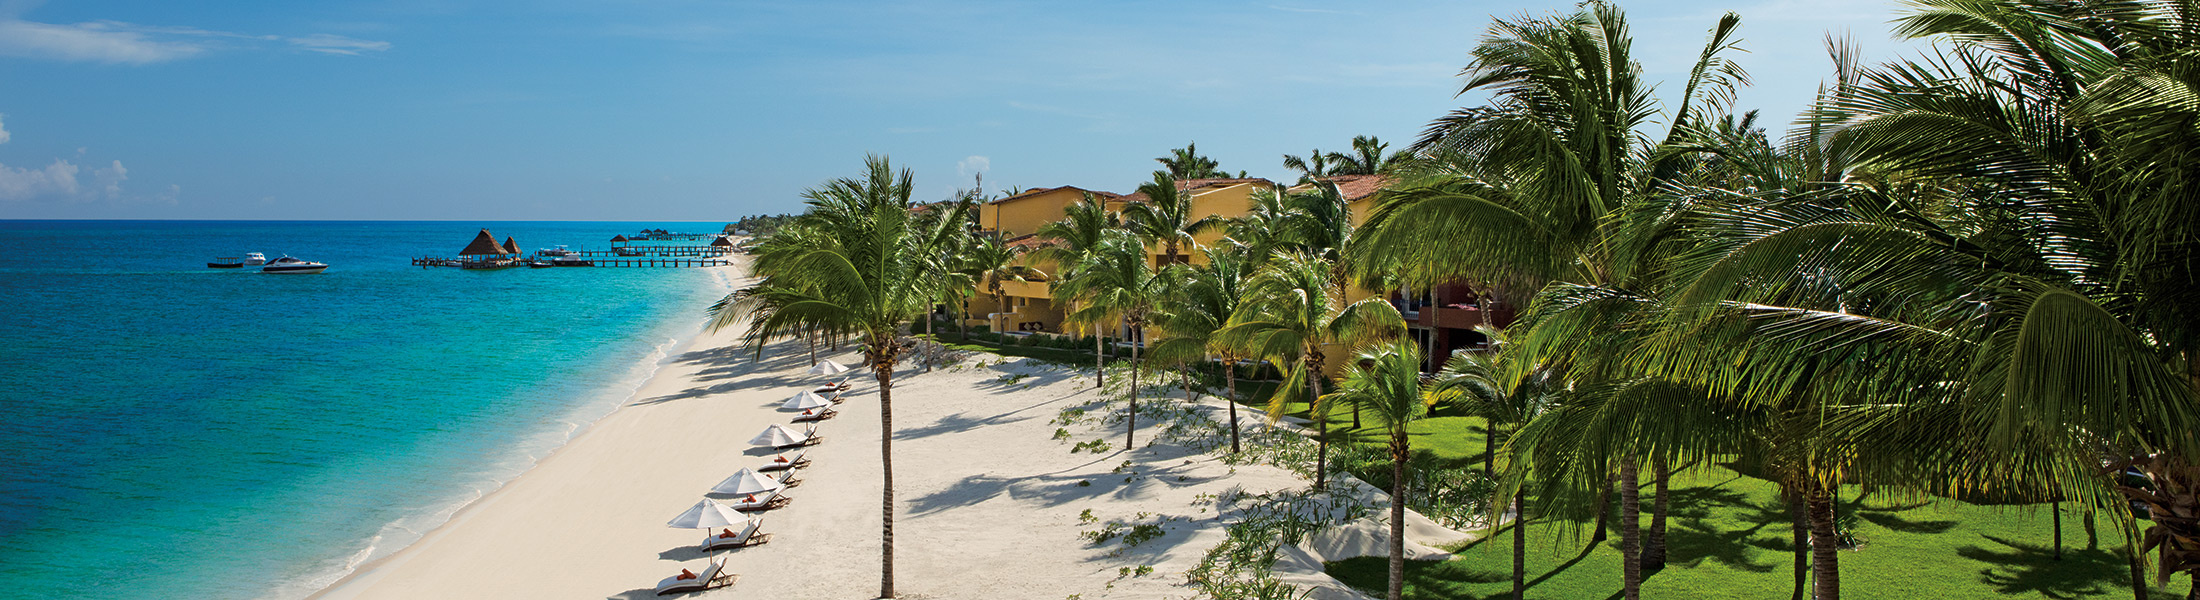 Beach with palmtrees at Zoetry Paraiso de la Bonita